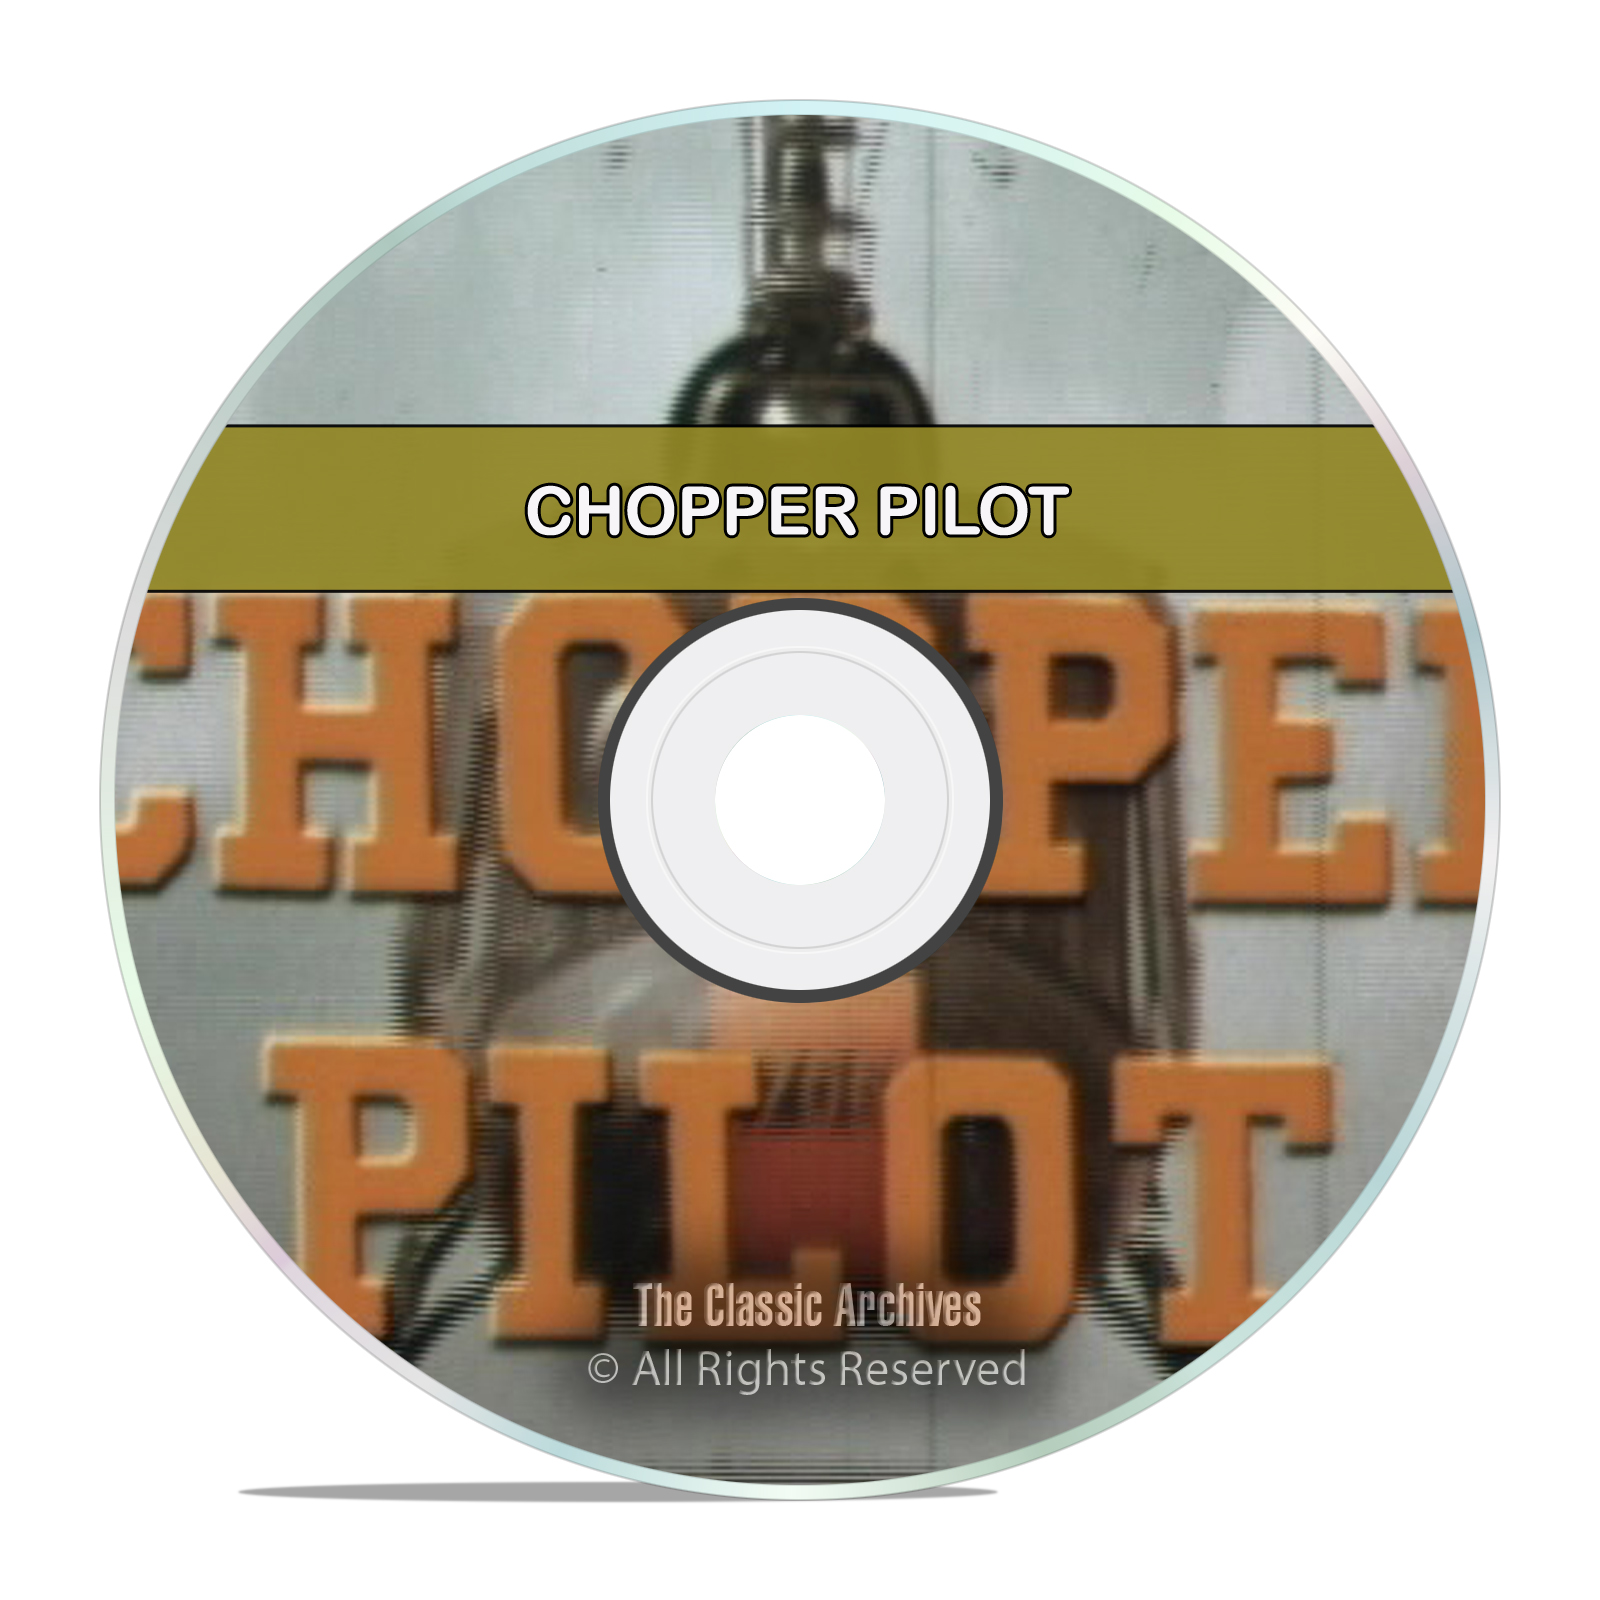 CHOPPER PILOT, Vietnam War Era Helicopter Training Video US Army DVD